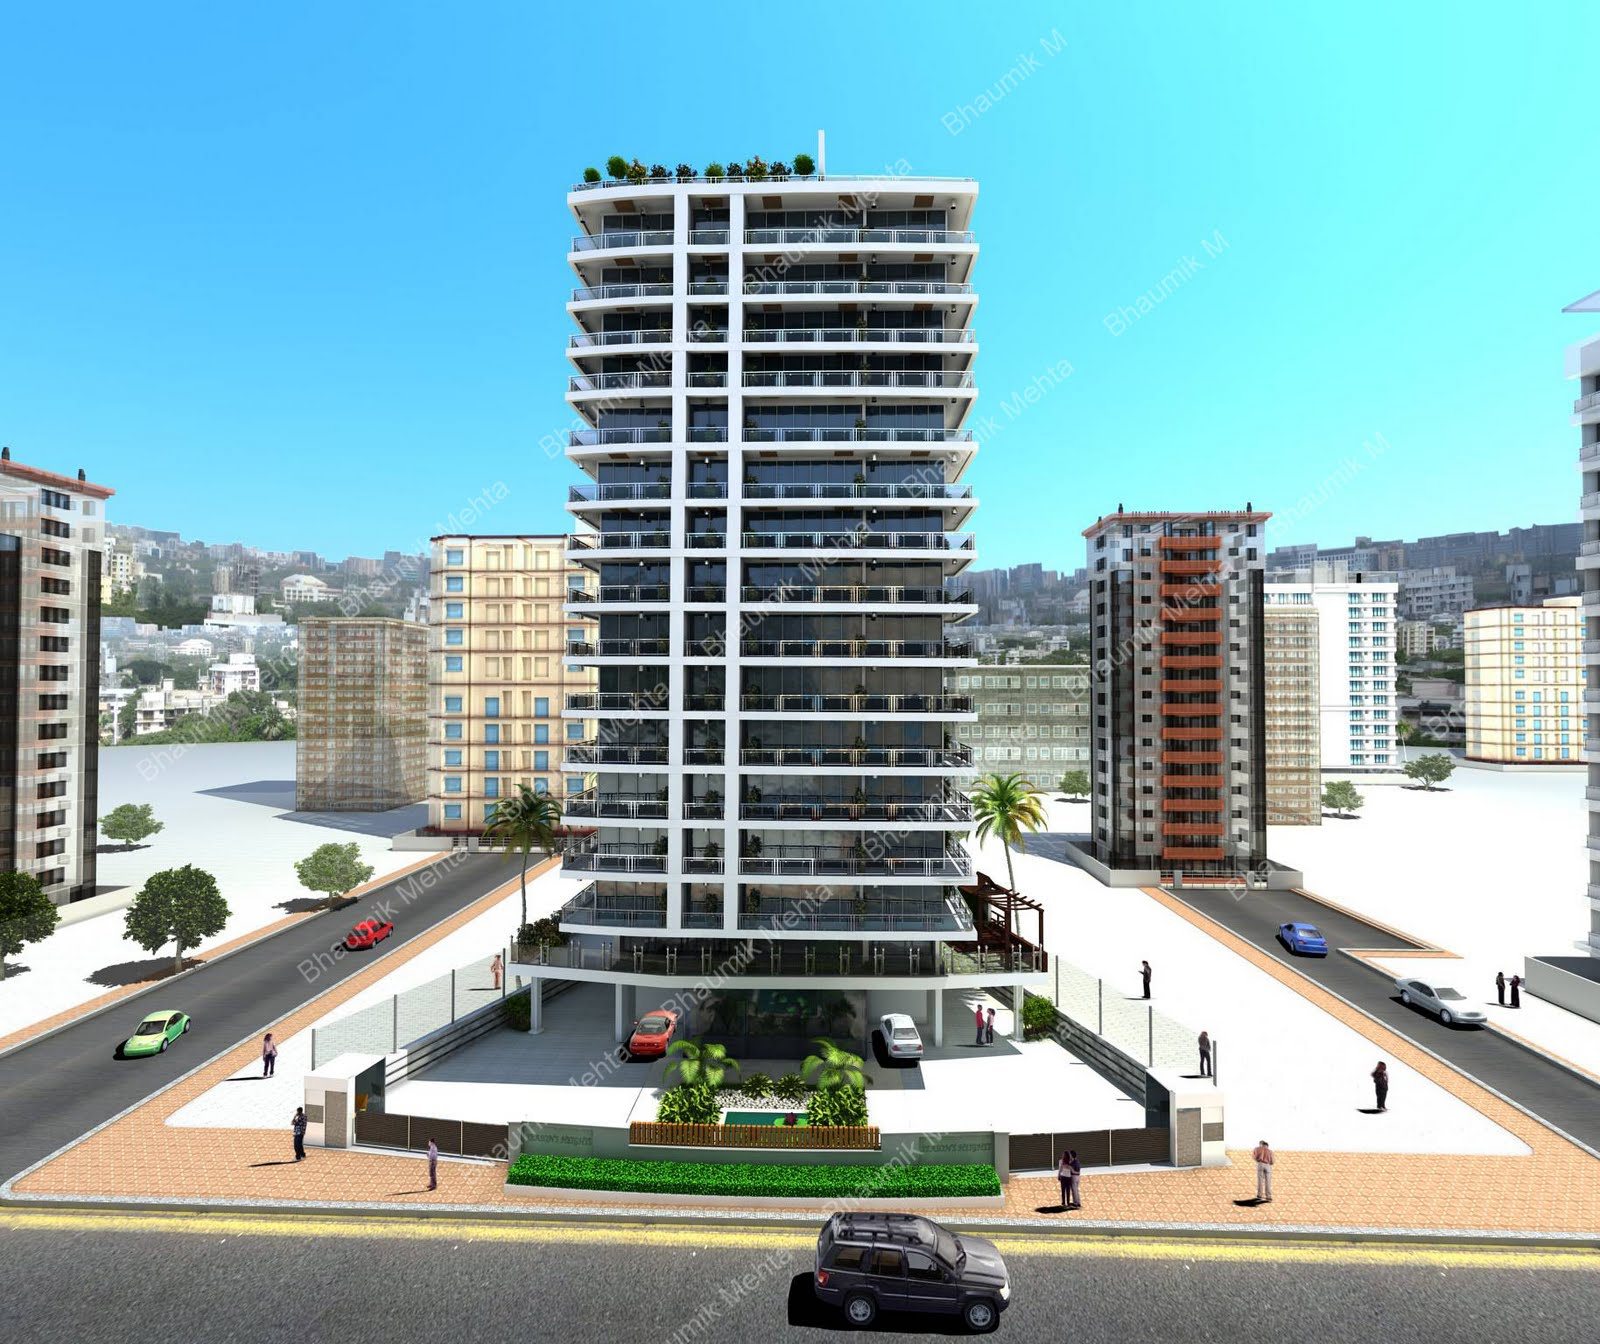 Bhaumik mehta 39 s 3d creations highrise building project for Terrace building